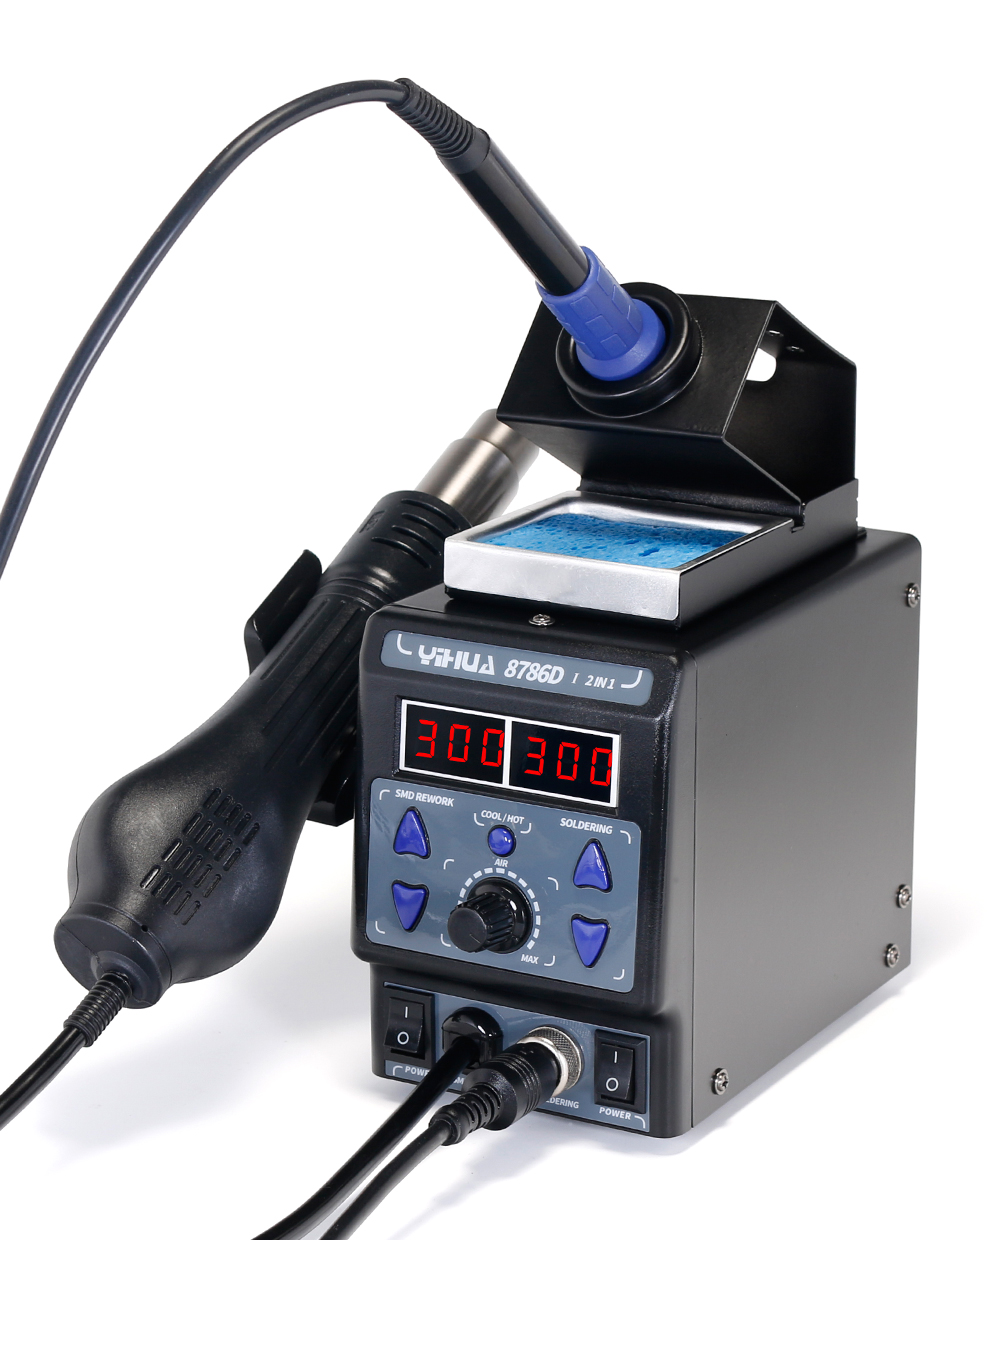 YIHUA 8786D Hot Air Digital Soldering Station for Phone and Laptop Chip Soldering 8